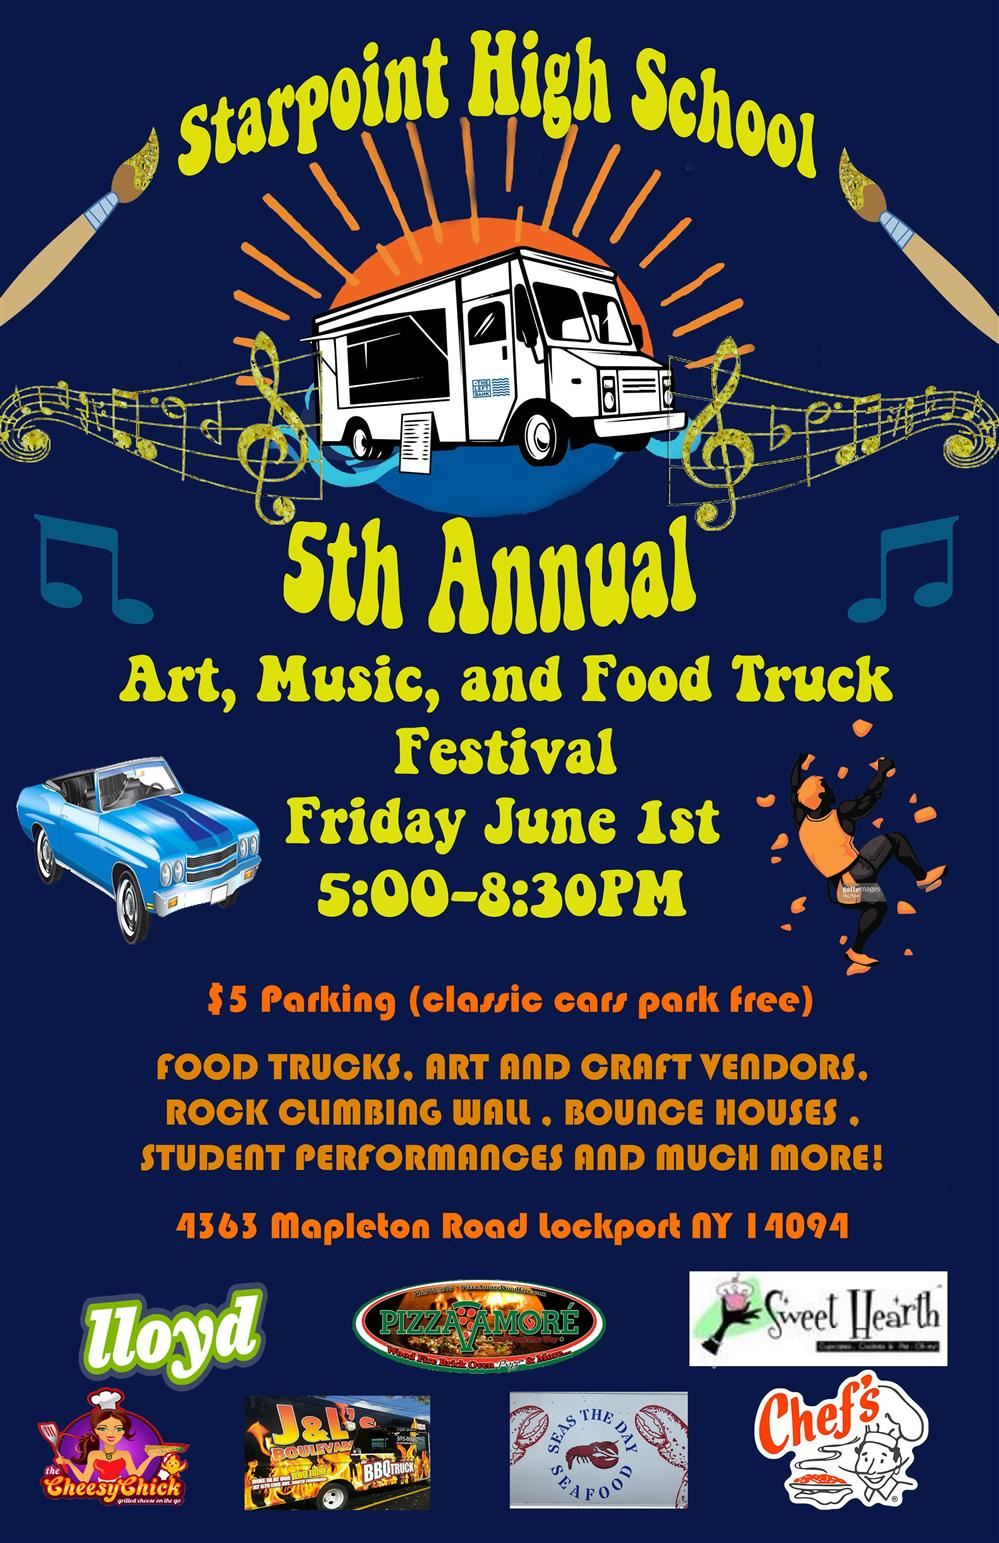 5th Annual Art, Music ad Food Truck Festival